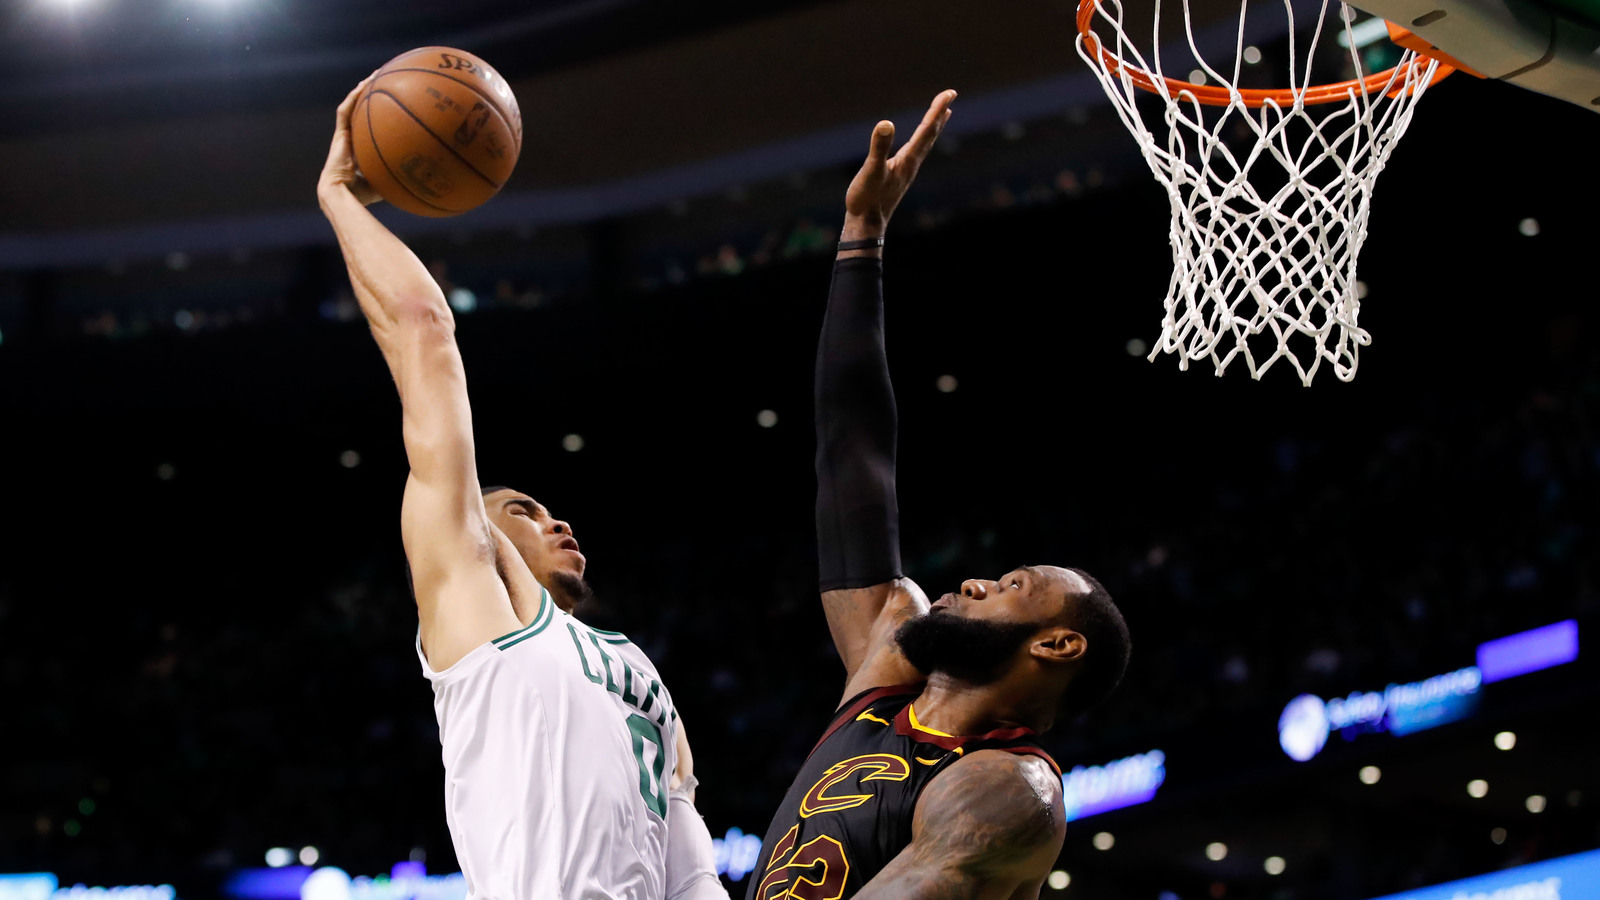 Watch: Jayson Tatum taunts LeBron after dunking on him | Yardbarker.com